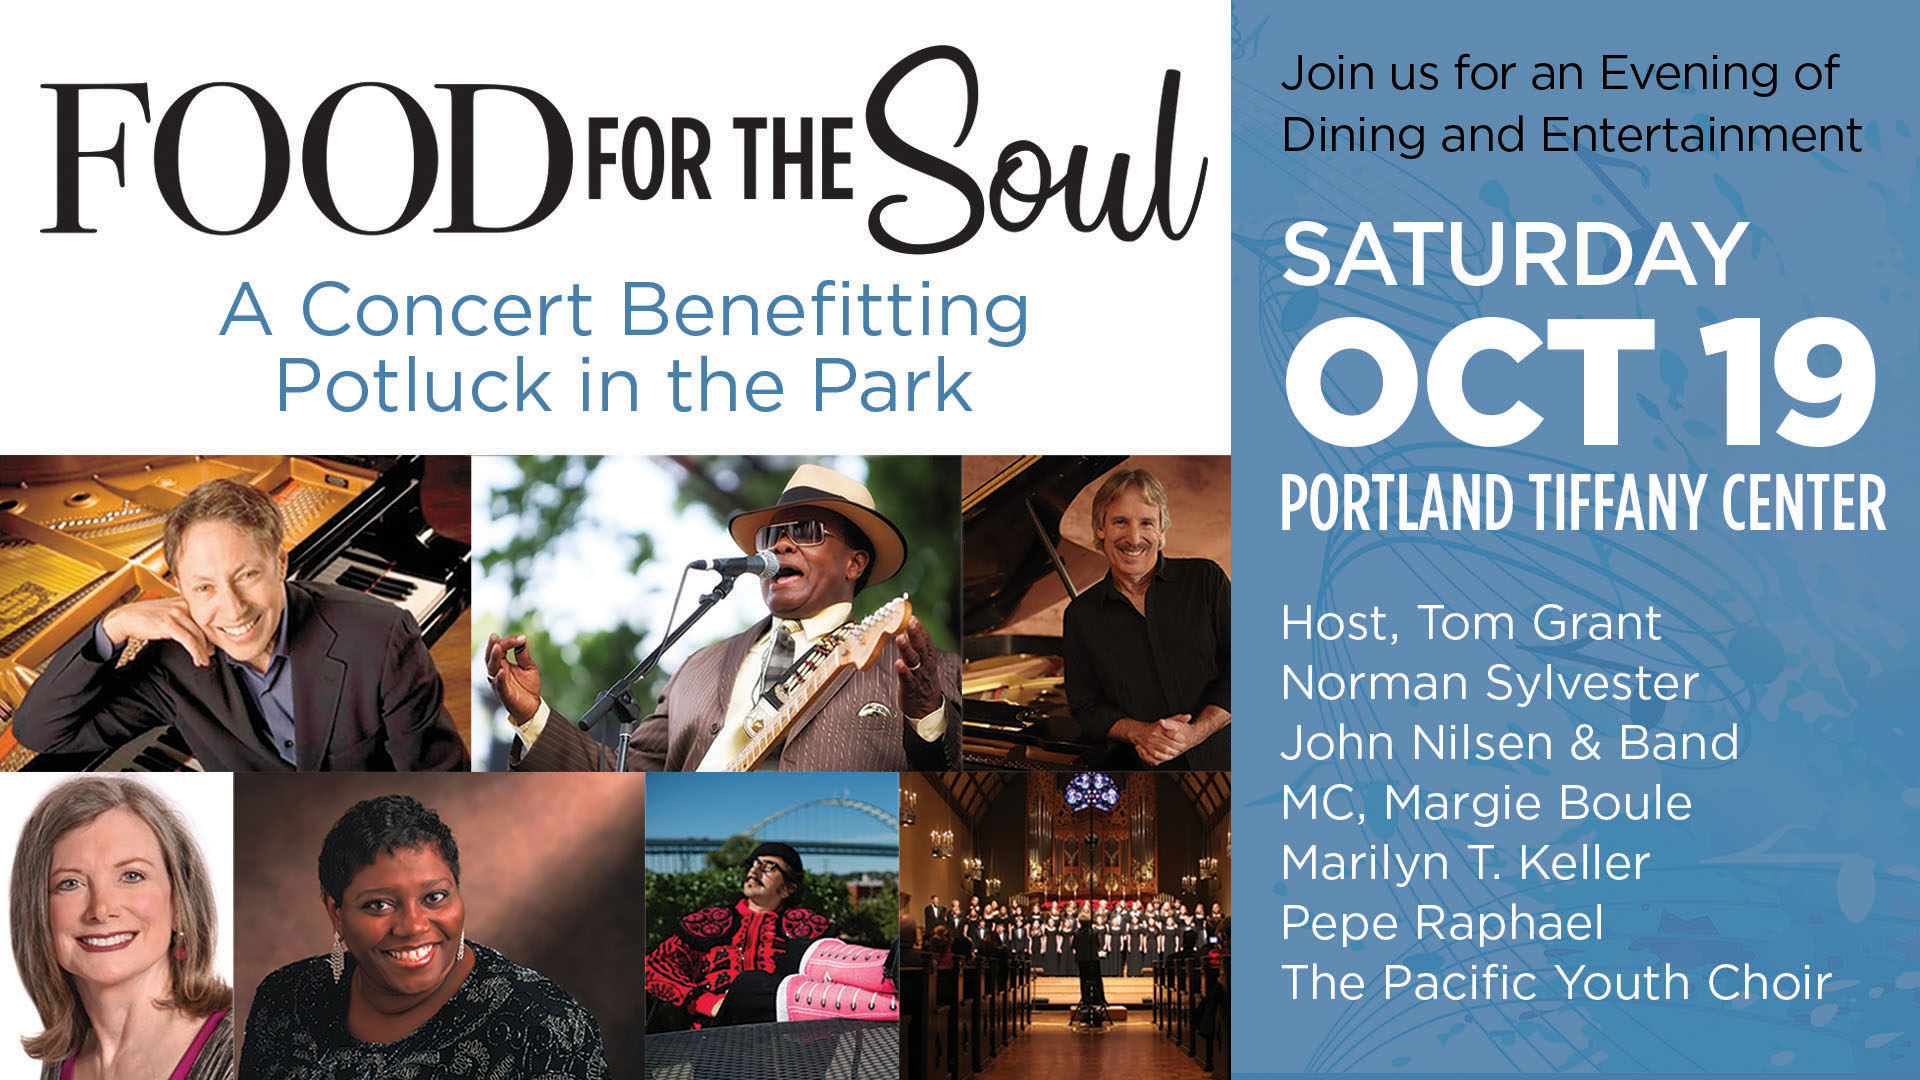 Food for the Soul Benefit Concert